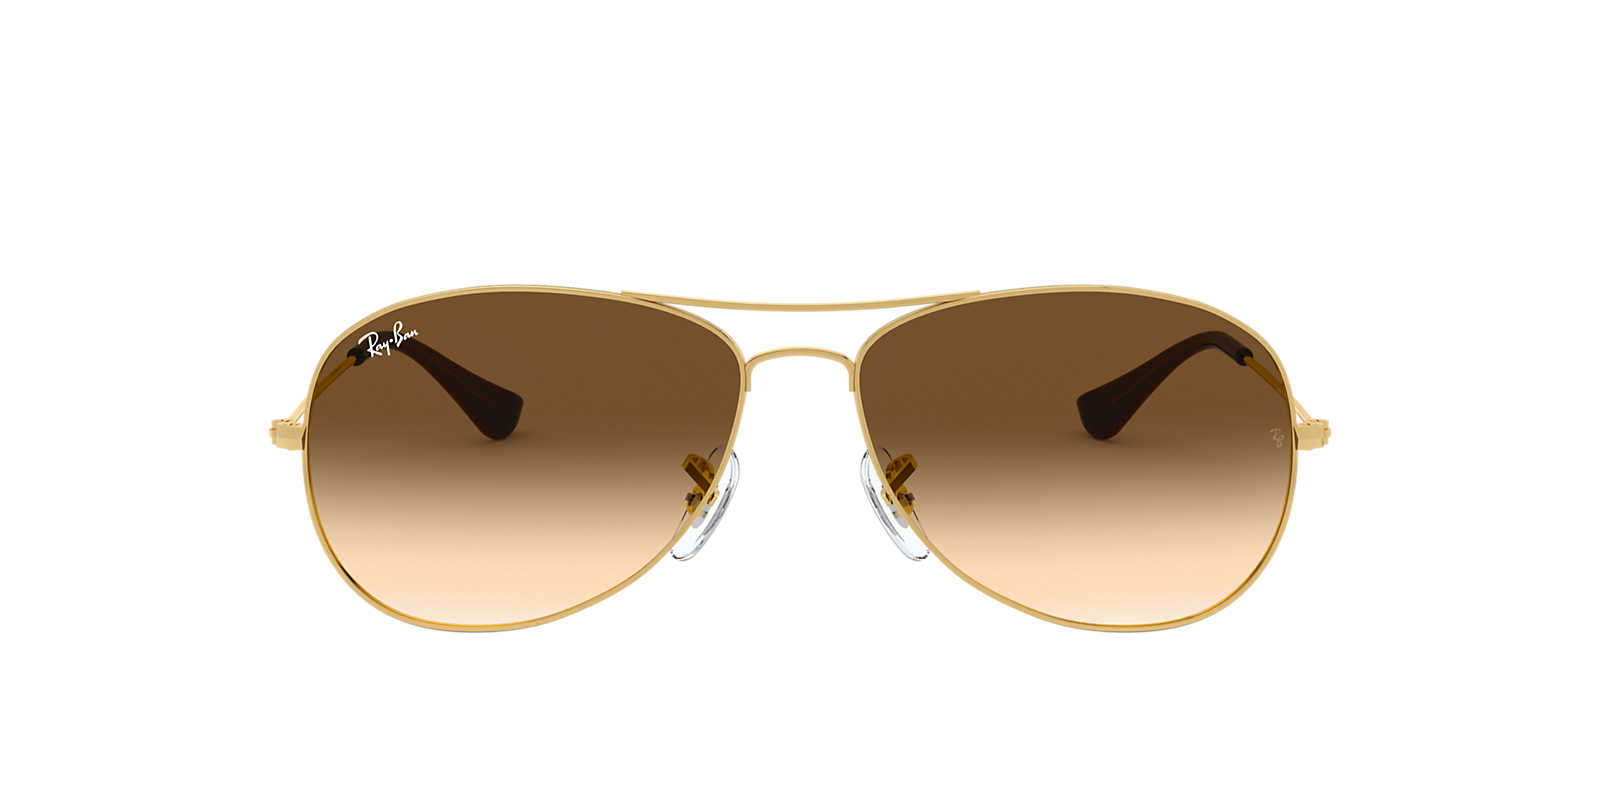 ray ban gold  Ray-Ban RB3362 59 COCKPIT 59 Brown \u0026 Gold Sunglasses